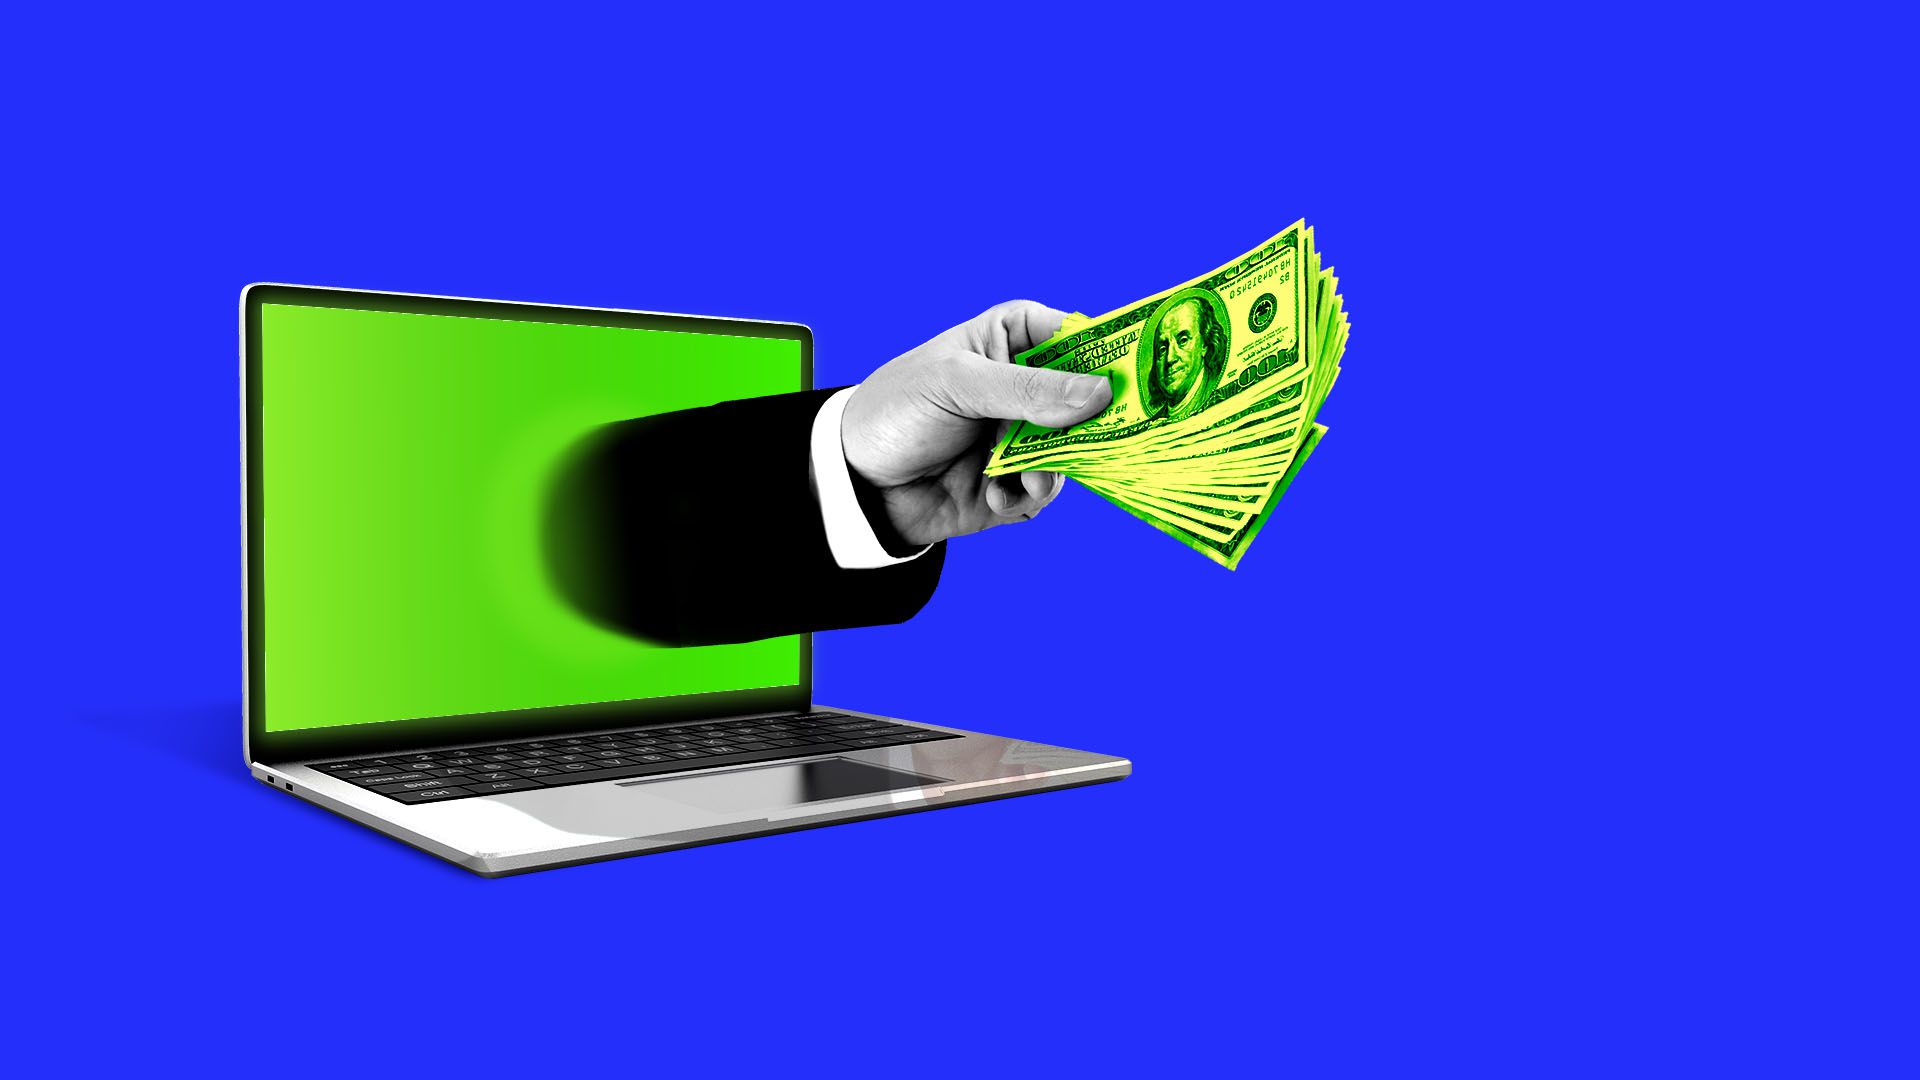 Illustration of hand with money reaching out of a computer screen